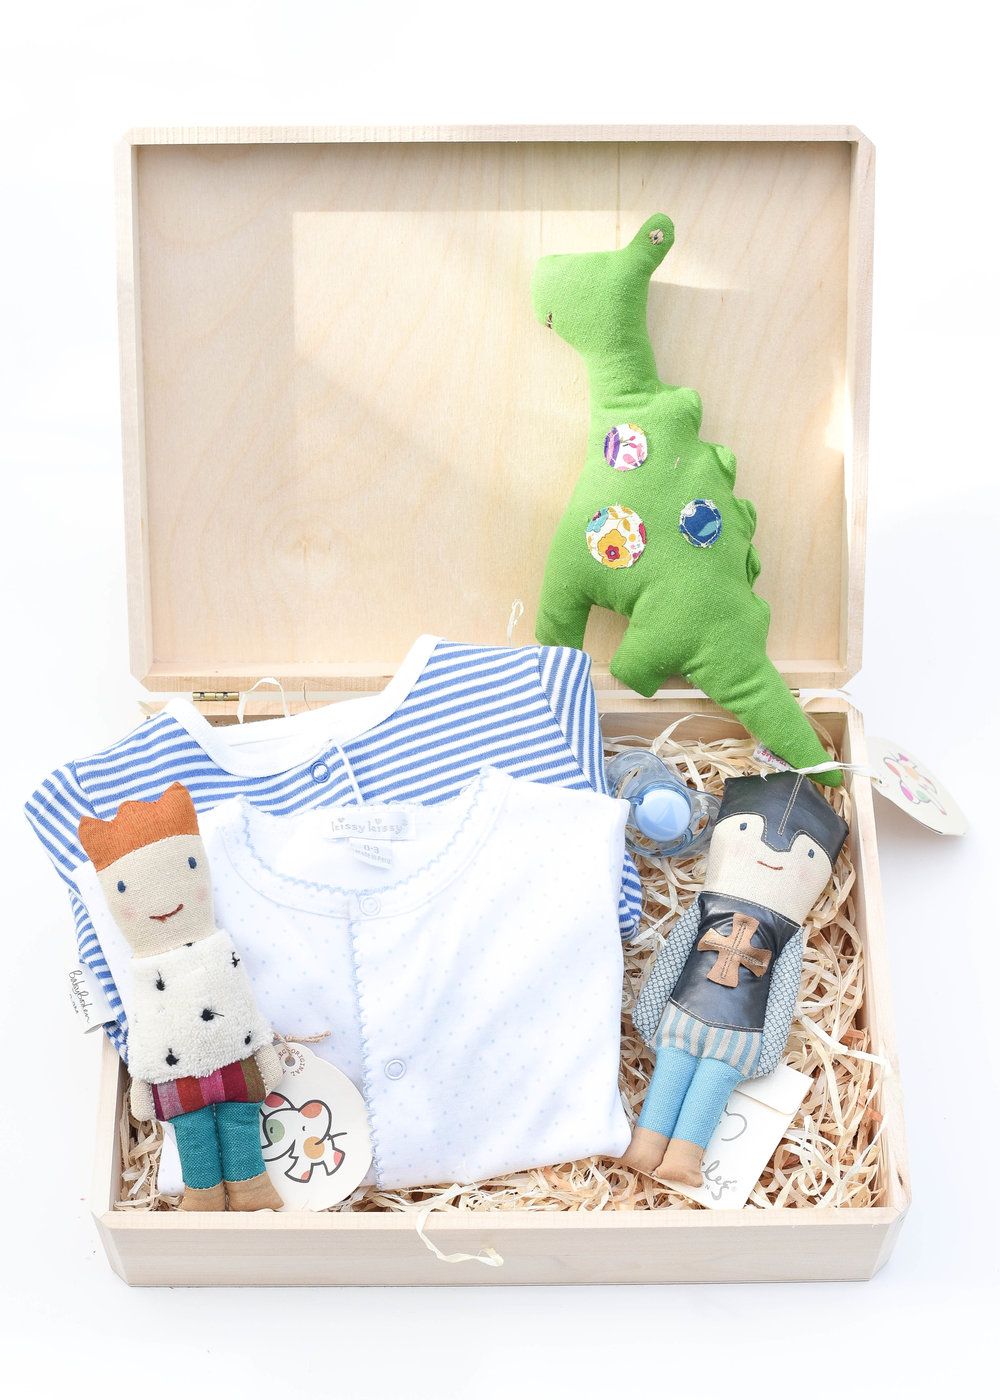 Playful Baby Gift Set - This curated set is the perfect mix of comfort and fun!  Versatile, quality pieces keep baby cozy while on the move, and these rattles are ones that will keep baby entertained for years to come, but act fast, as these rattles are discontinued and on final sale!  To purchase, click links below:L:R    Prince Rattle   Reversible Stripe Cardigan   Pima Cotton Footed Playsuit   Dragon Rattle   Pacifier   Knight Rattle (can still be found here)  My go-to gift wrap this holiday, shown here:Unfinished Walnut Box (2 pack)   Aspen Wood Excelsior (BULK)Only needing to wrap one present?Individual Unfinished Walnut Box   Aspen Wood Excelsior (4 oz bag)